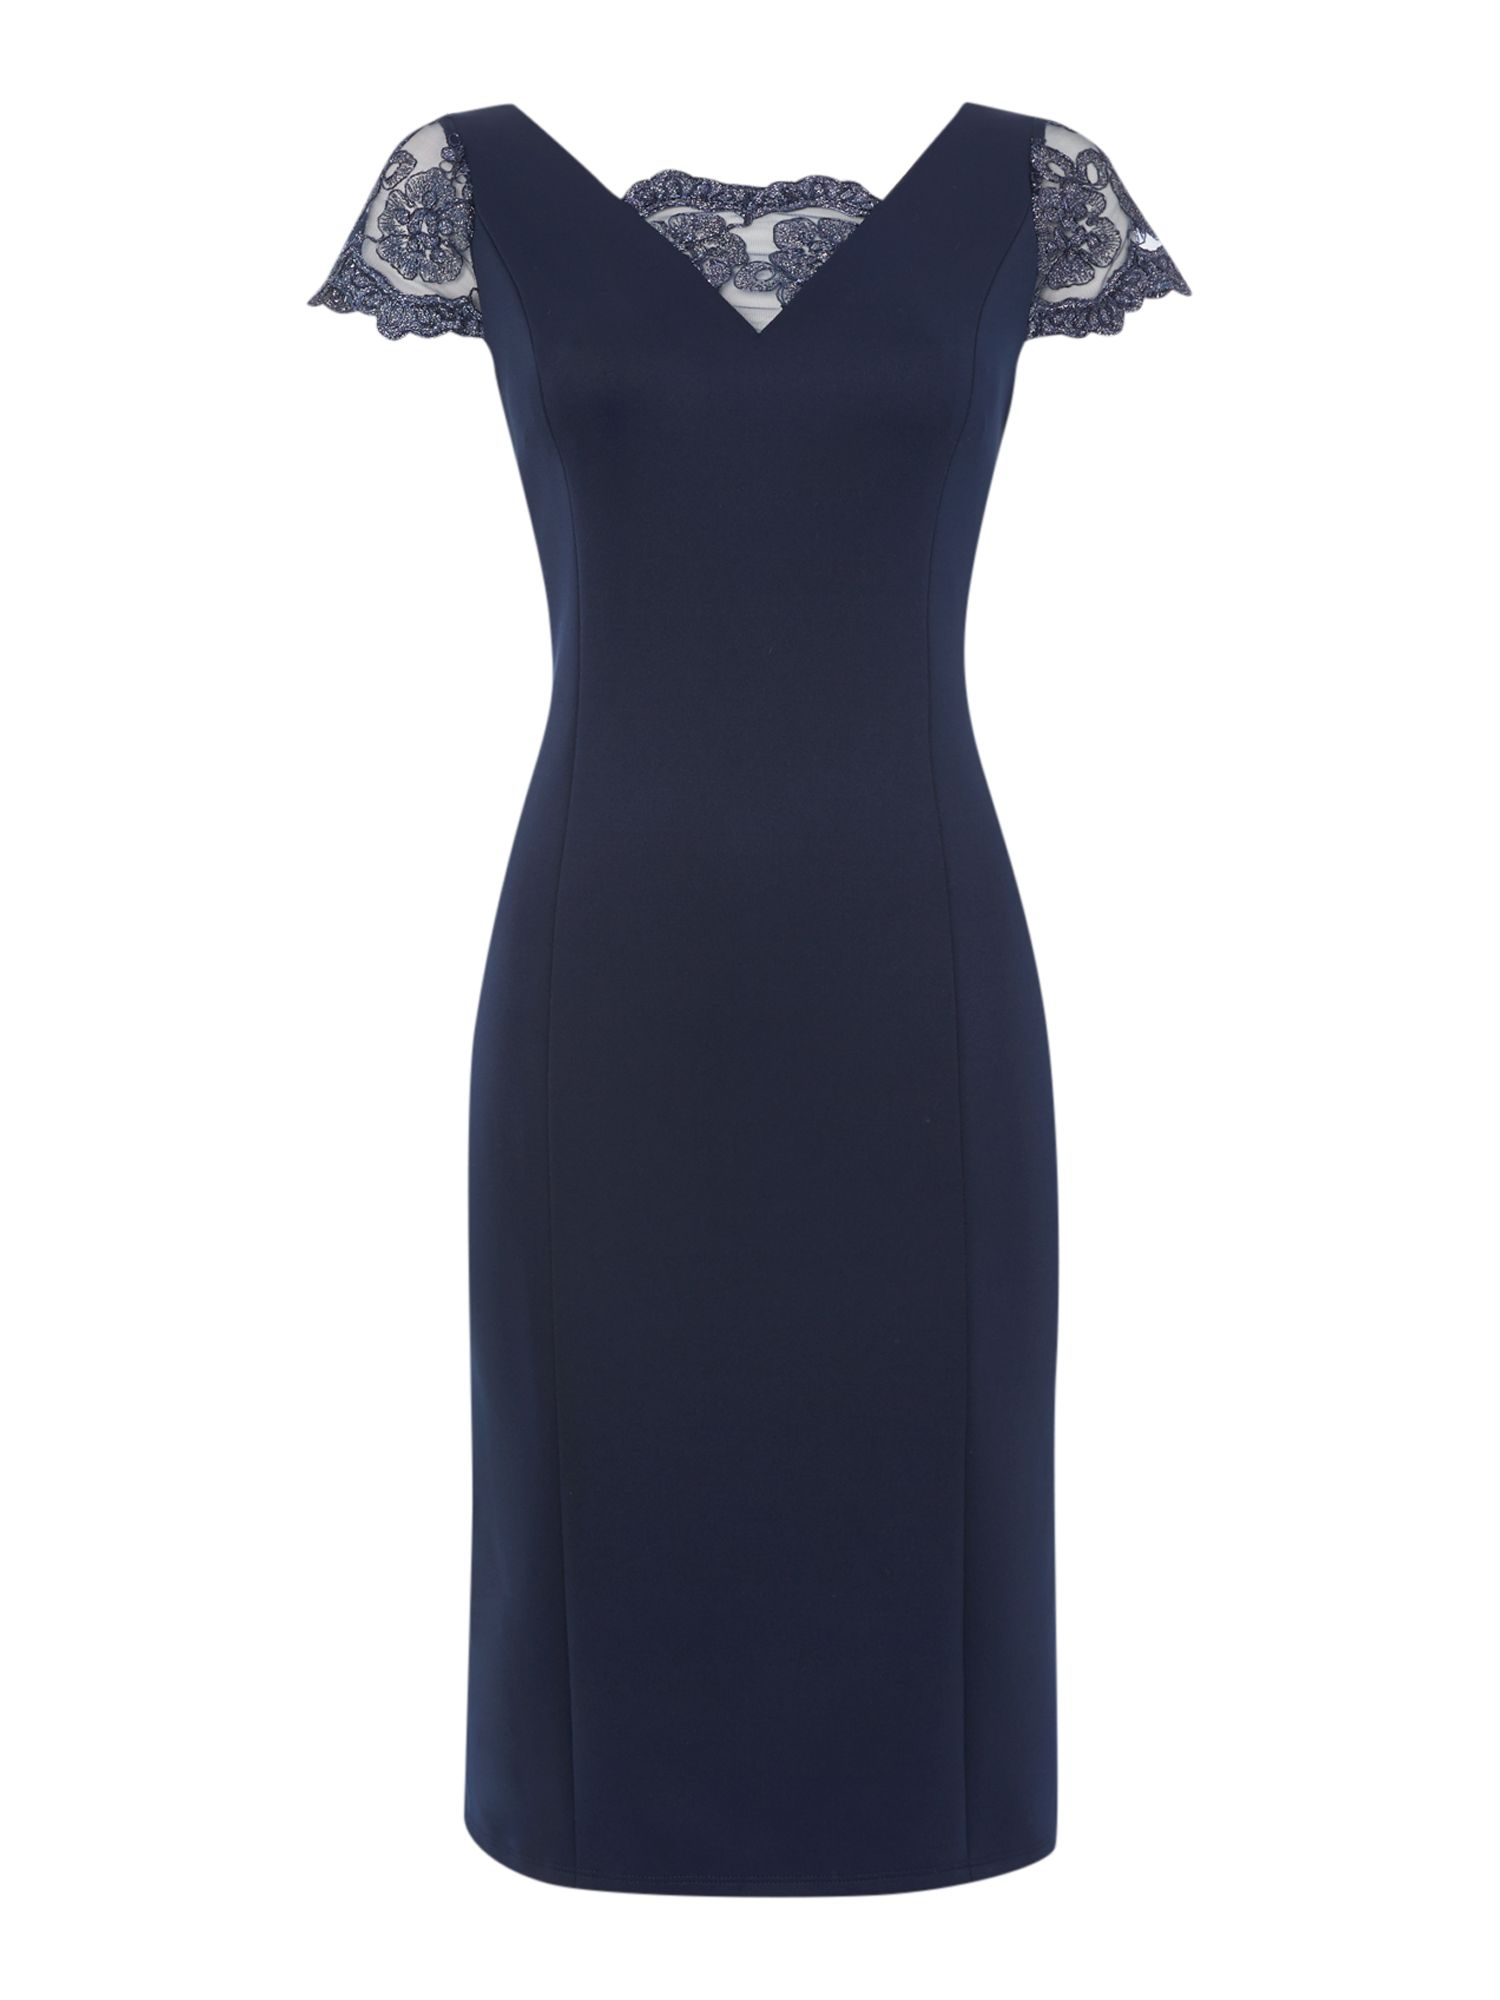 Shubette Shift dress with lace neckline, Navy